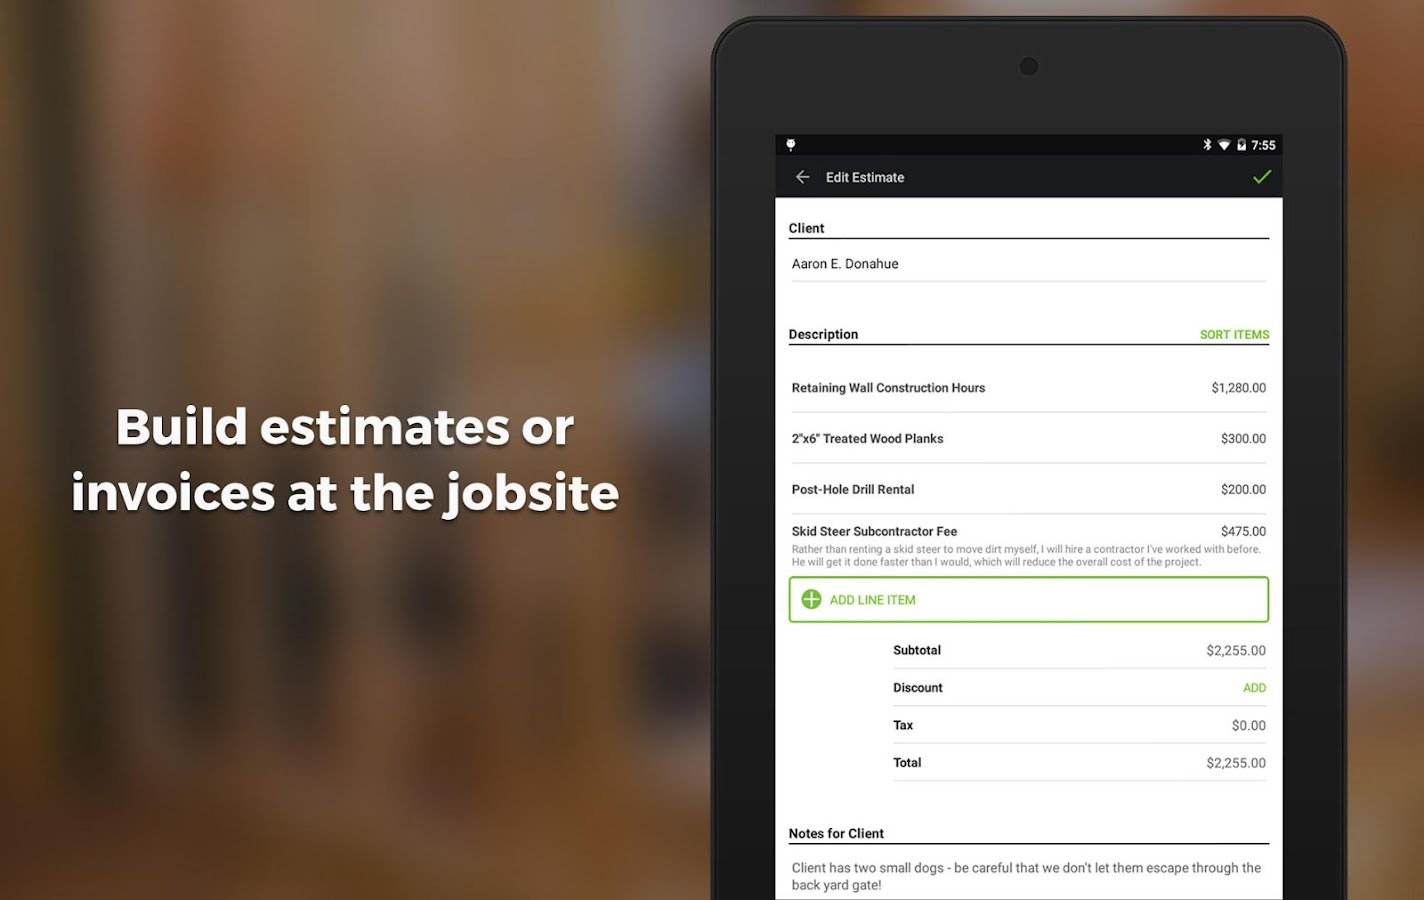 Contractor Estimate Invoice Android Apps on Google Play – Contractor Invoice